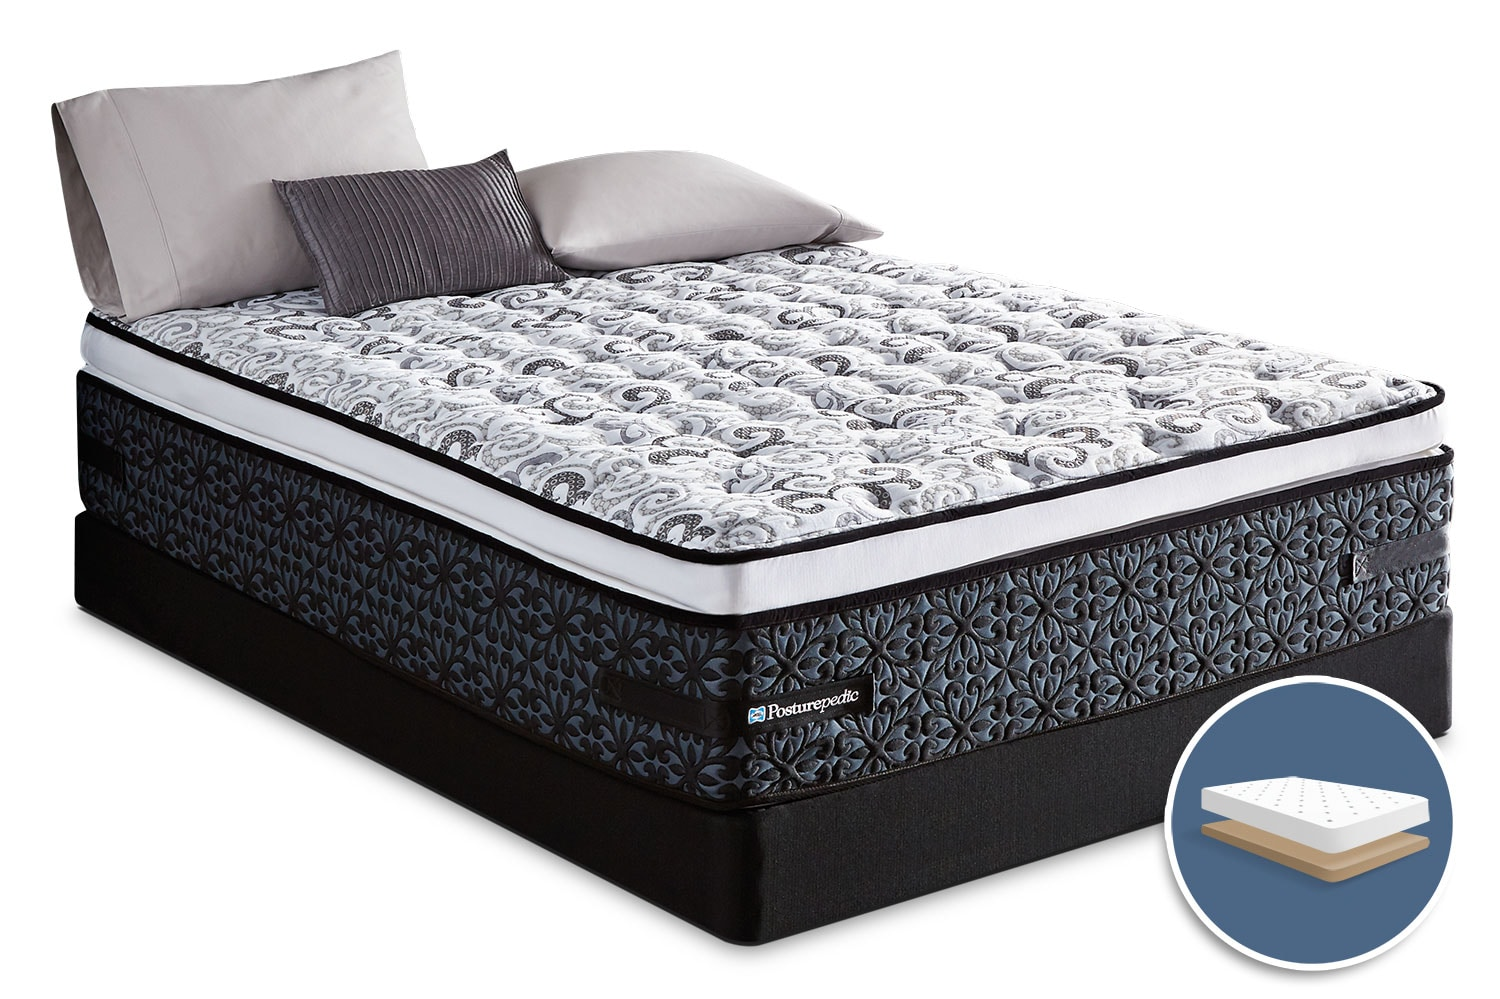 Mattresses and Bedding - Sealy Crown Jewel Luxe Summer Crest Euro Pillow-Top Low-Profile Queen Mattress Set